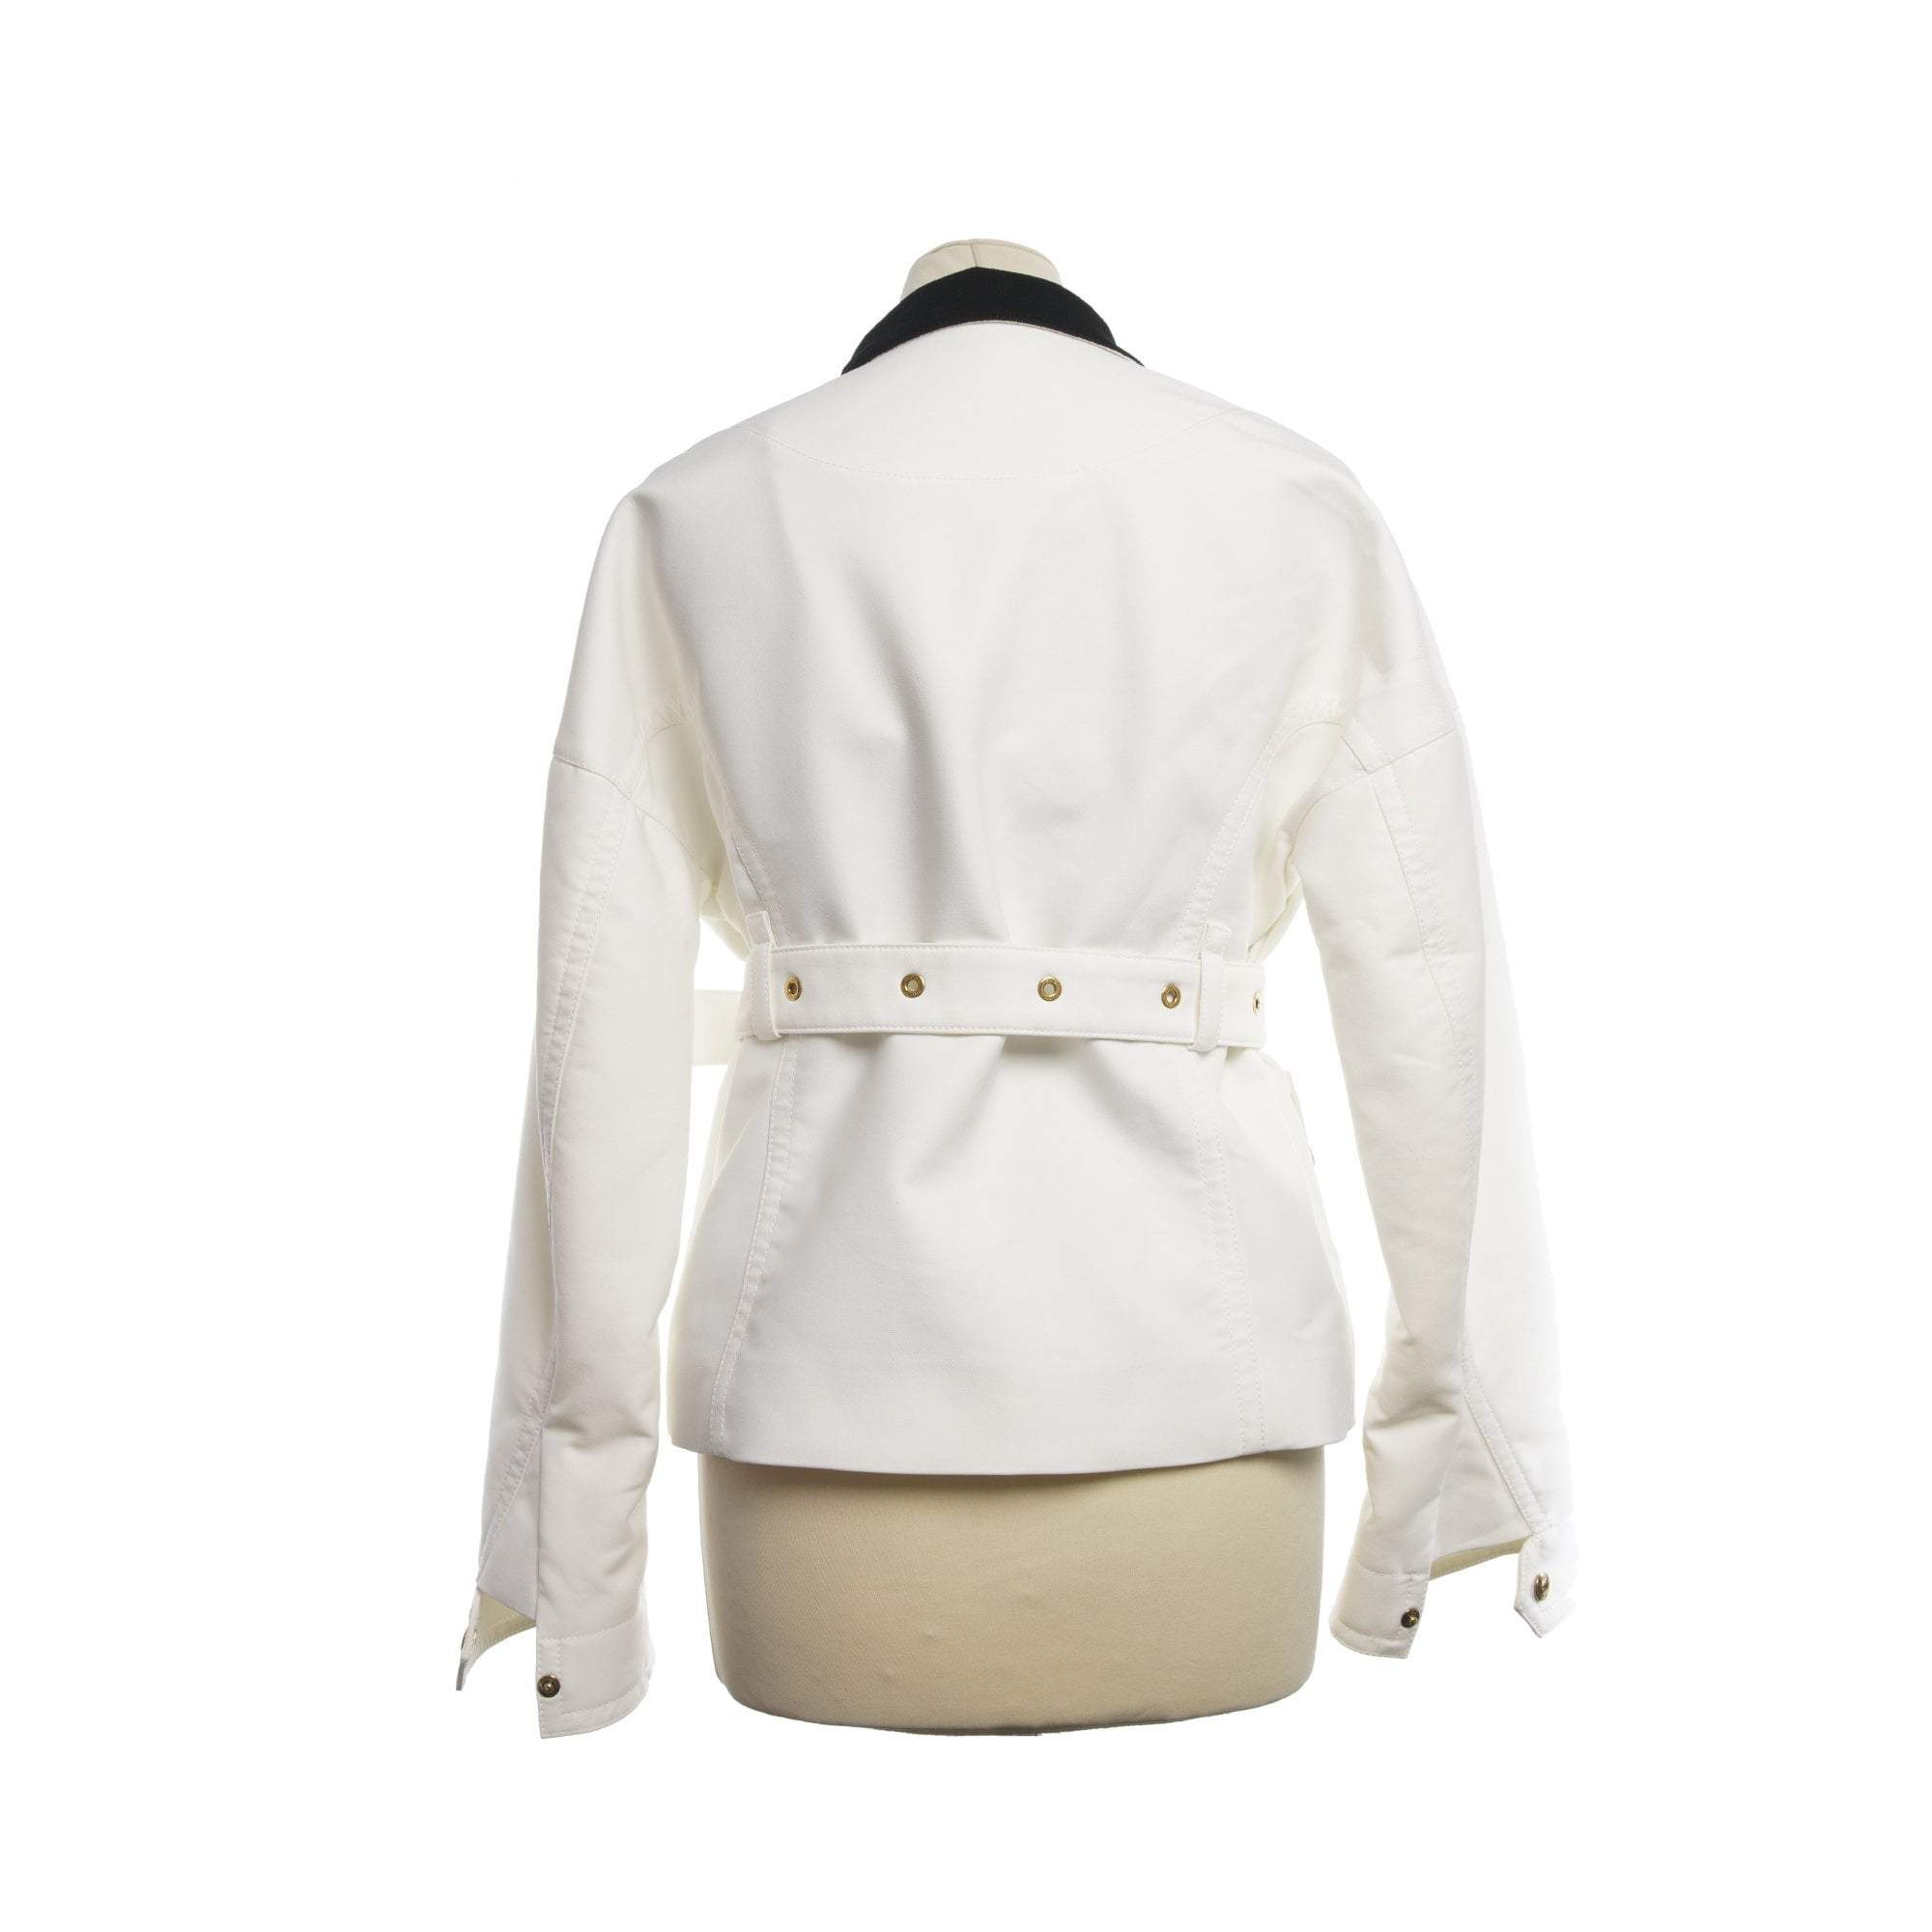 Louis Vuitton White Jacket w Gold Buttons